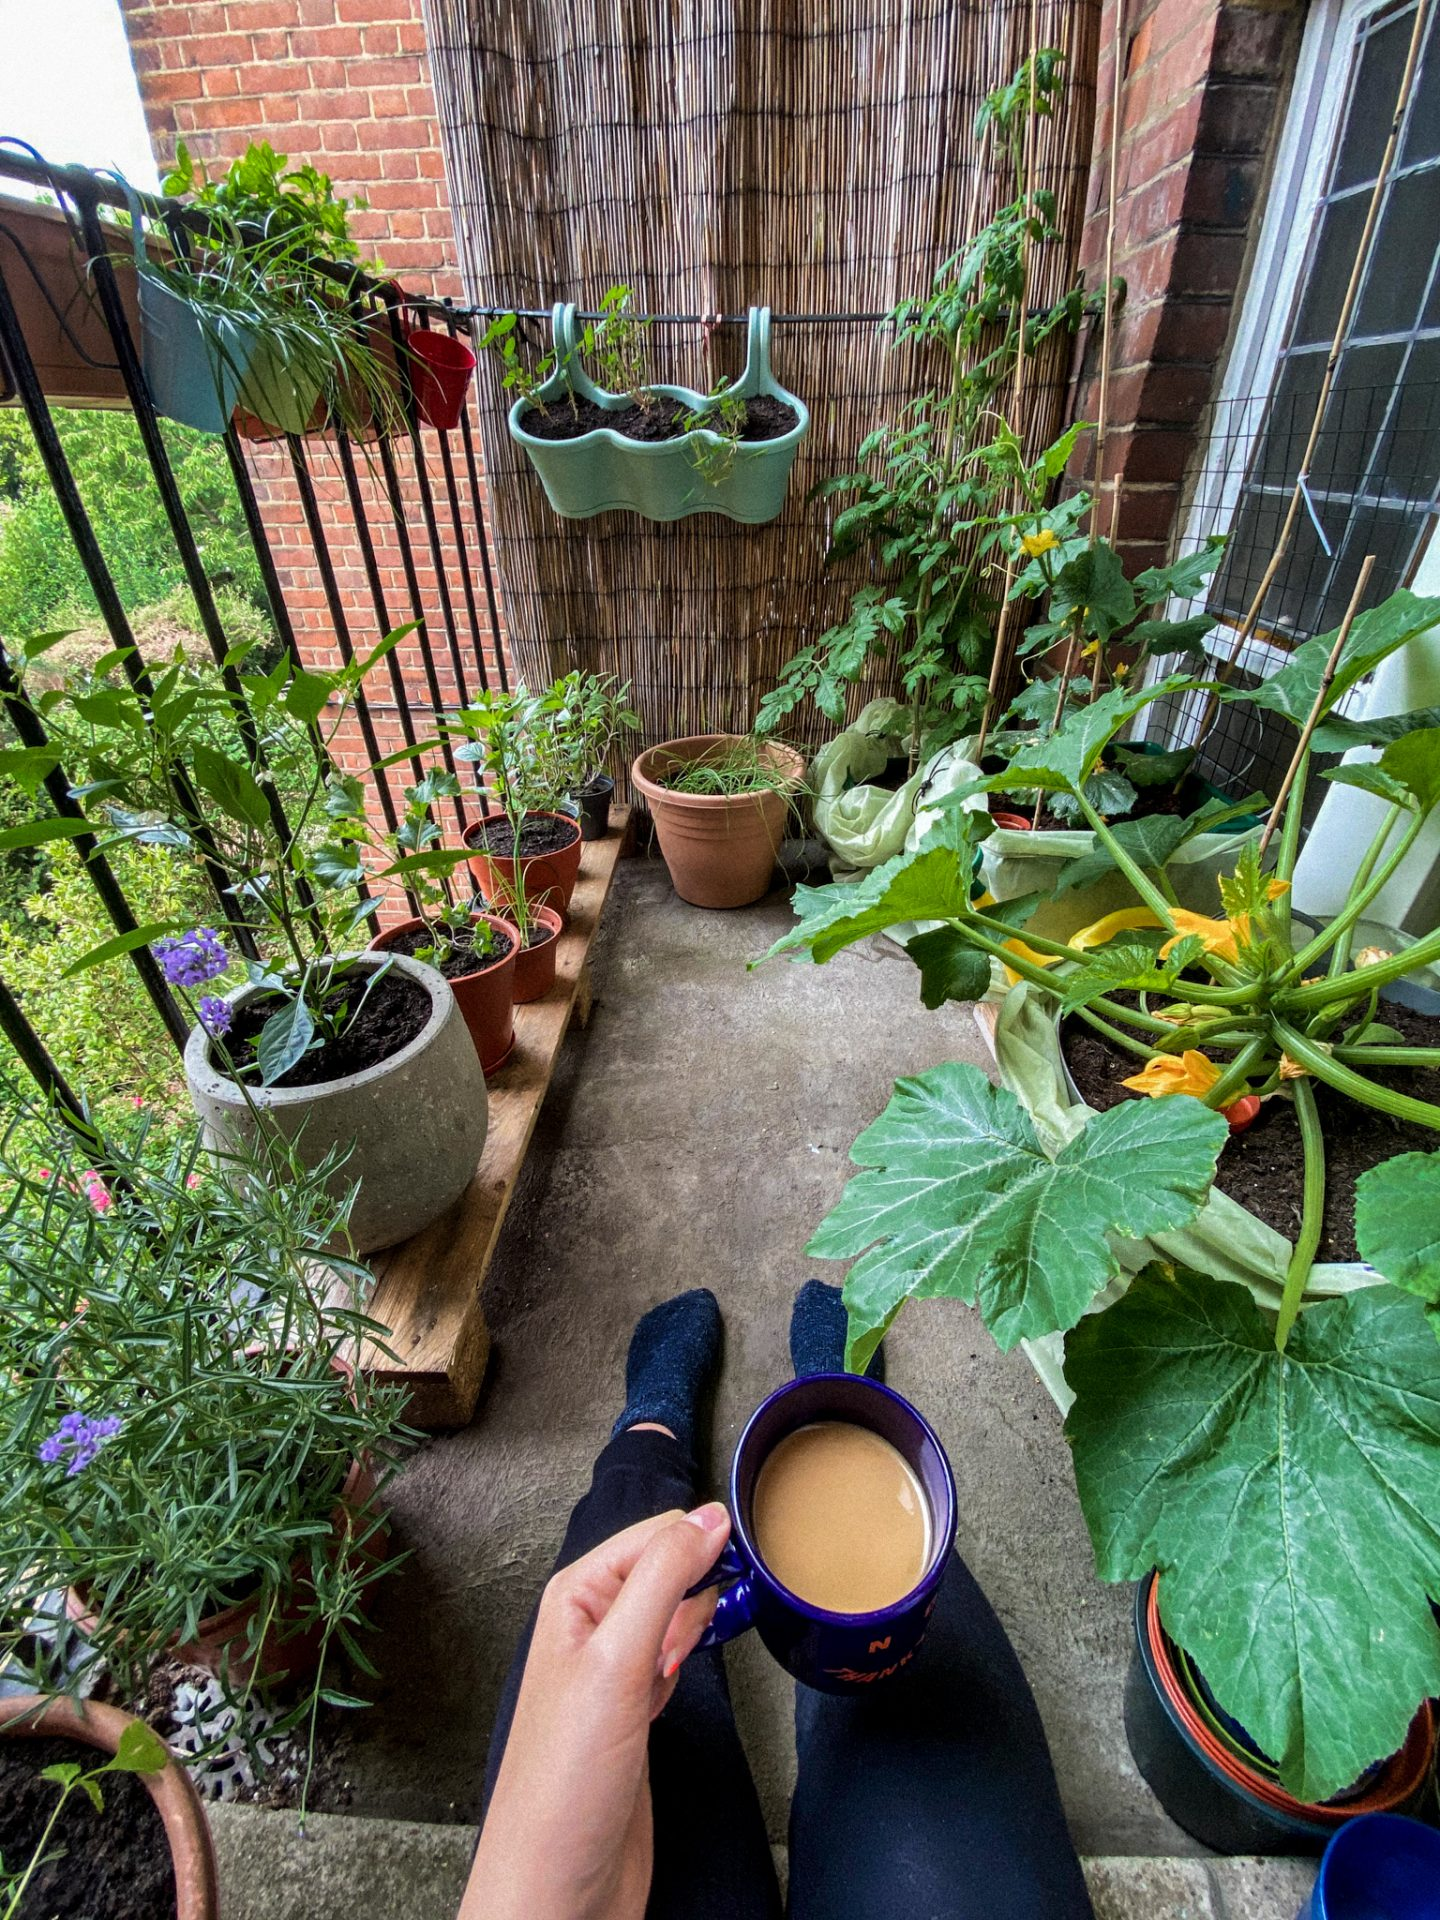 charlie's POV as she sits on her balcony with a cup of tea in front of her and surrounded my various plants